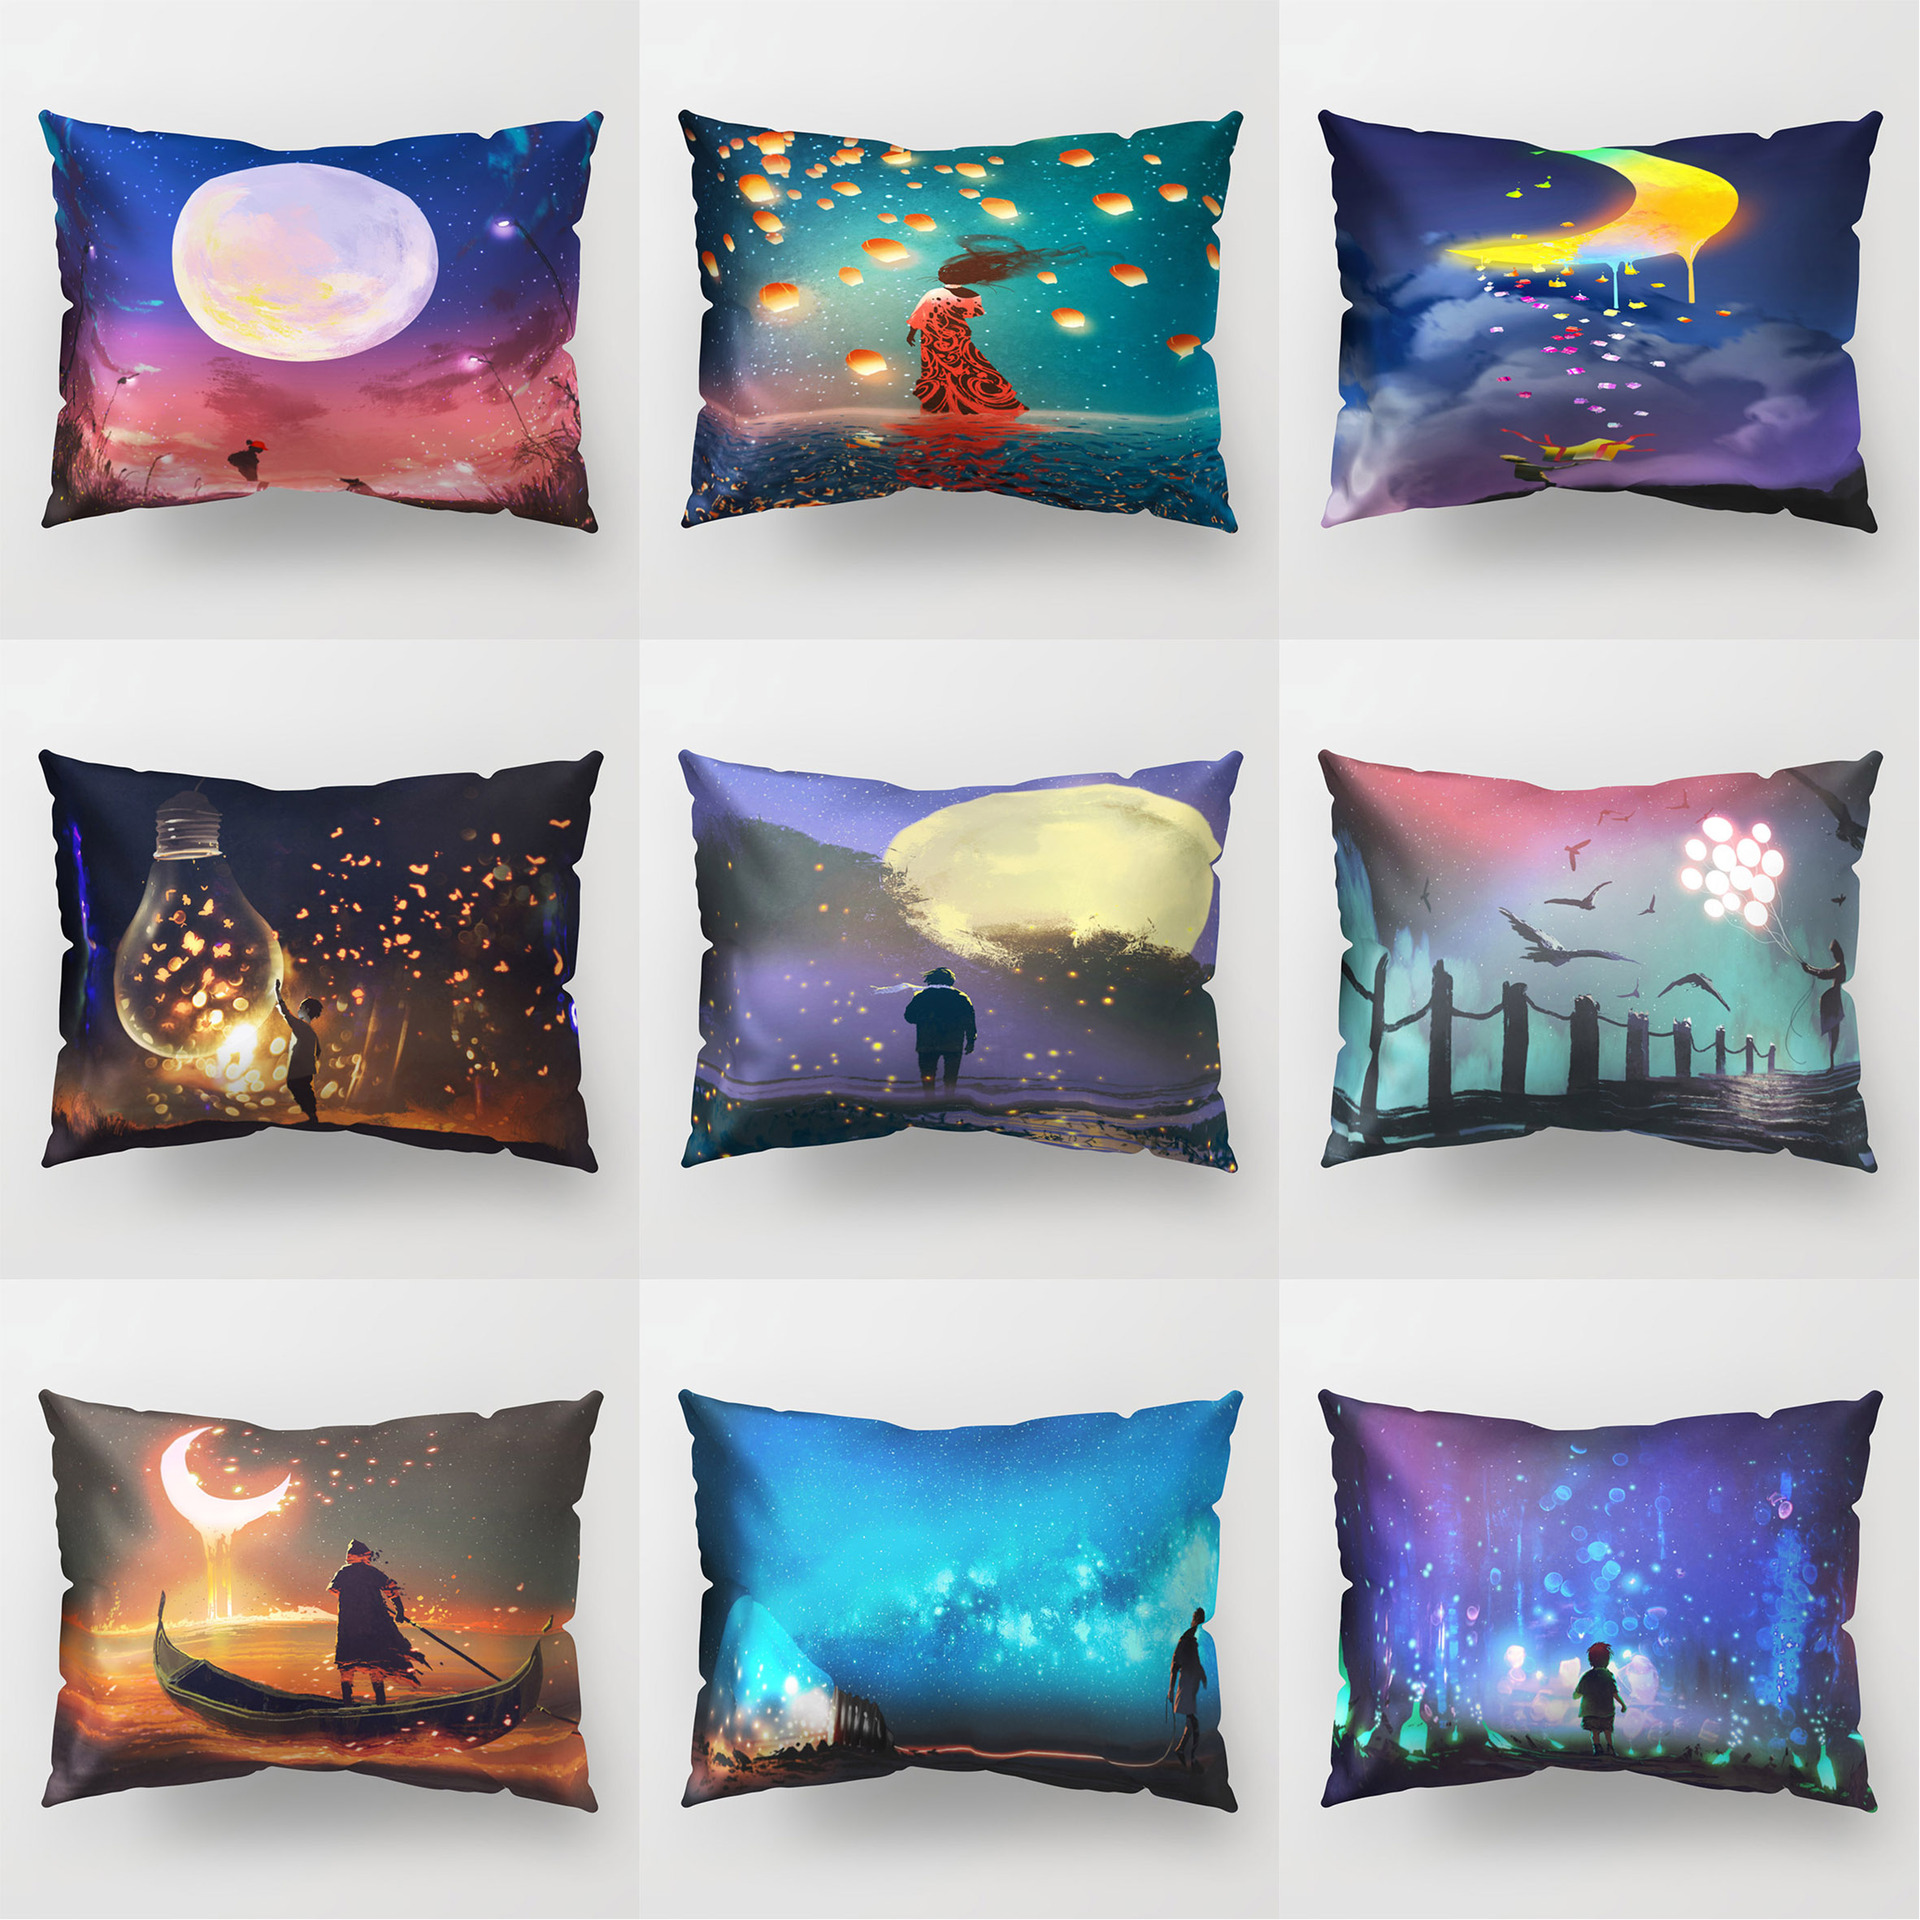 Fairy Tale Night Cushion Cover <font><b>30*50</b></font> Dreamy <font><b>Pillow</b></font> <font><b>Cases</b></font> Polyester Decorative for Sofa Couch Decor Accessories Home Living Room image